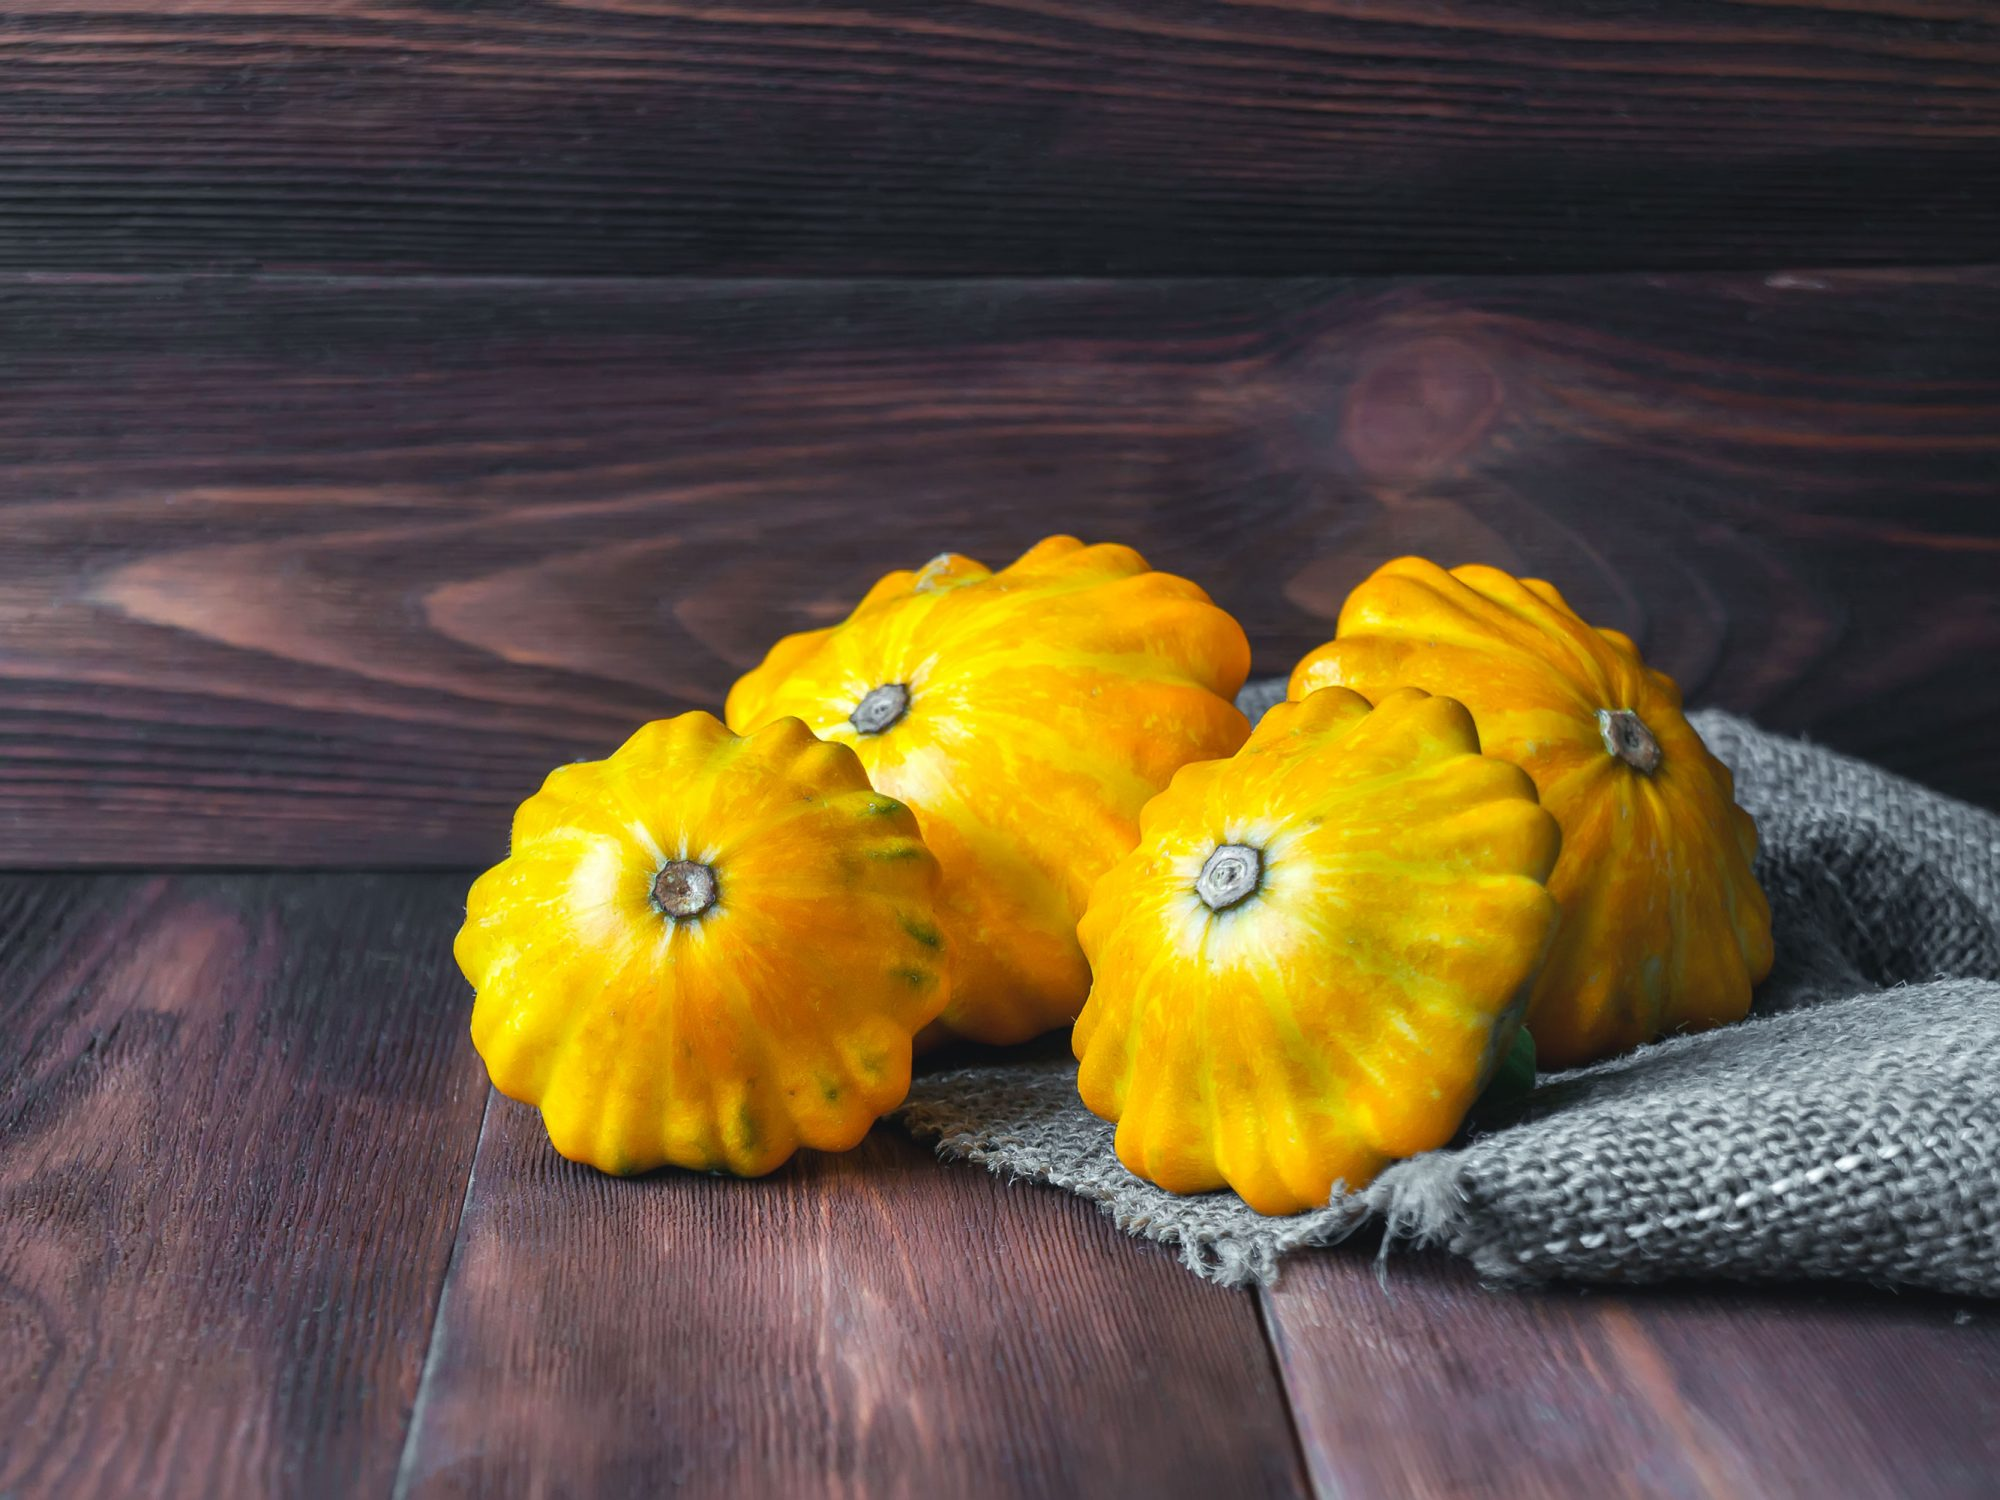 You Can't Treat All Pattypan Squash Like Zucchini—I Learned the Hard Way